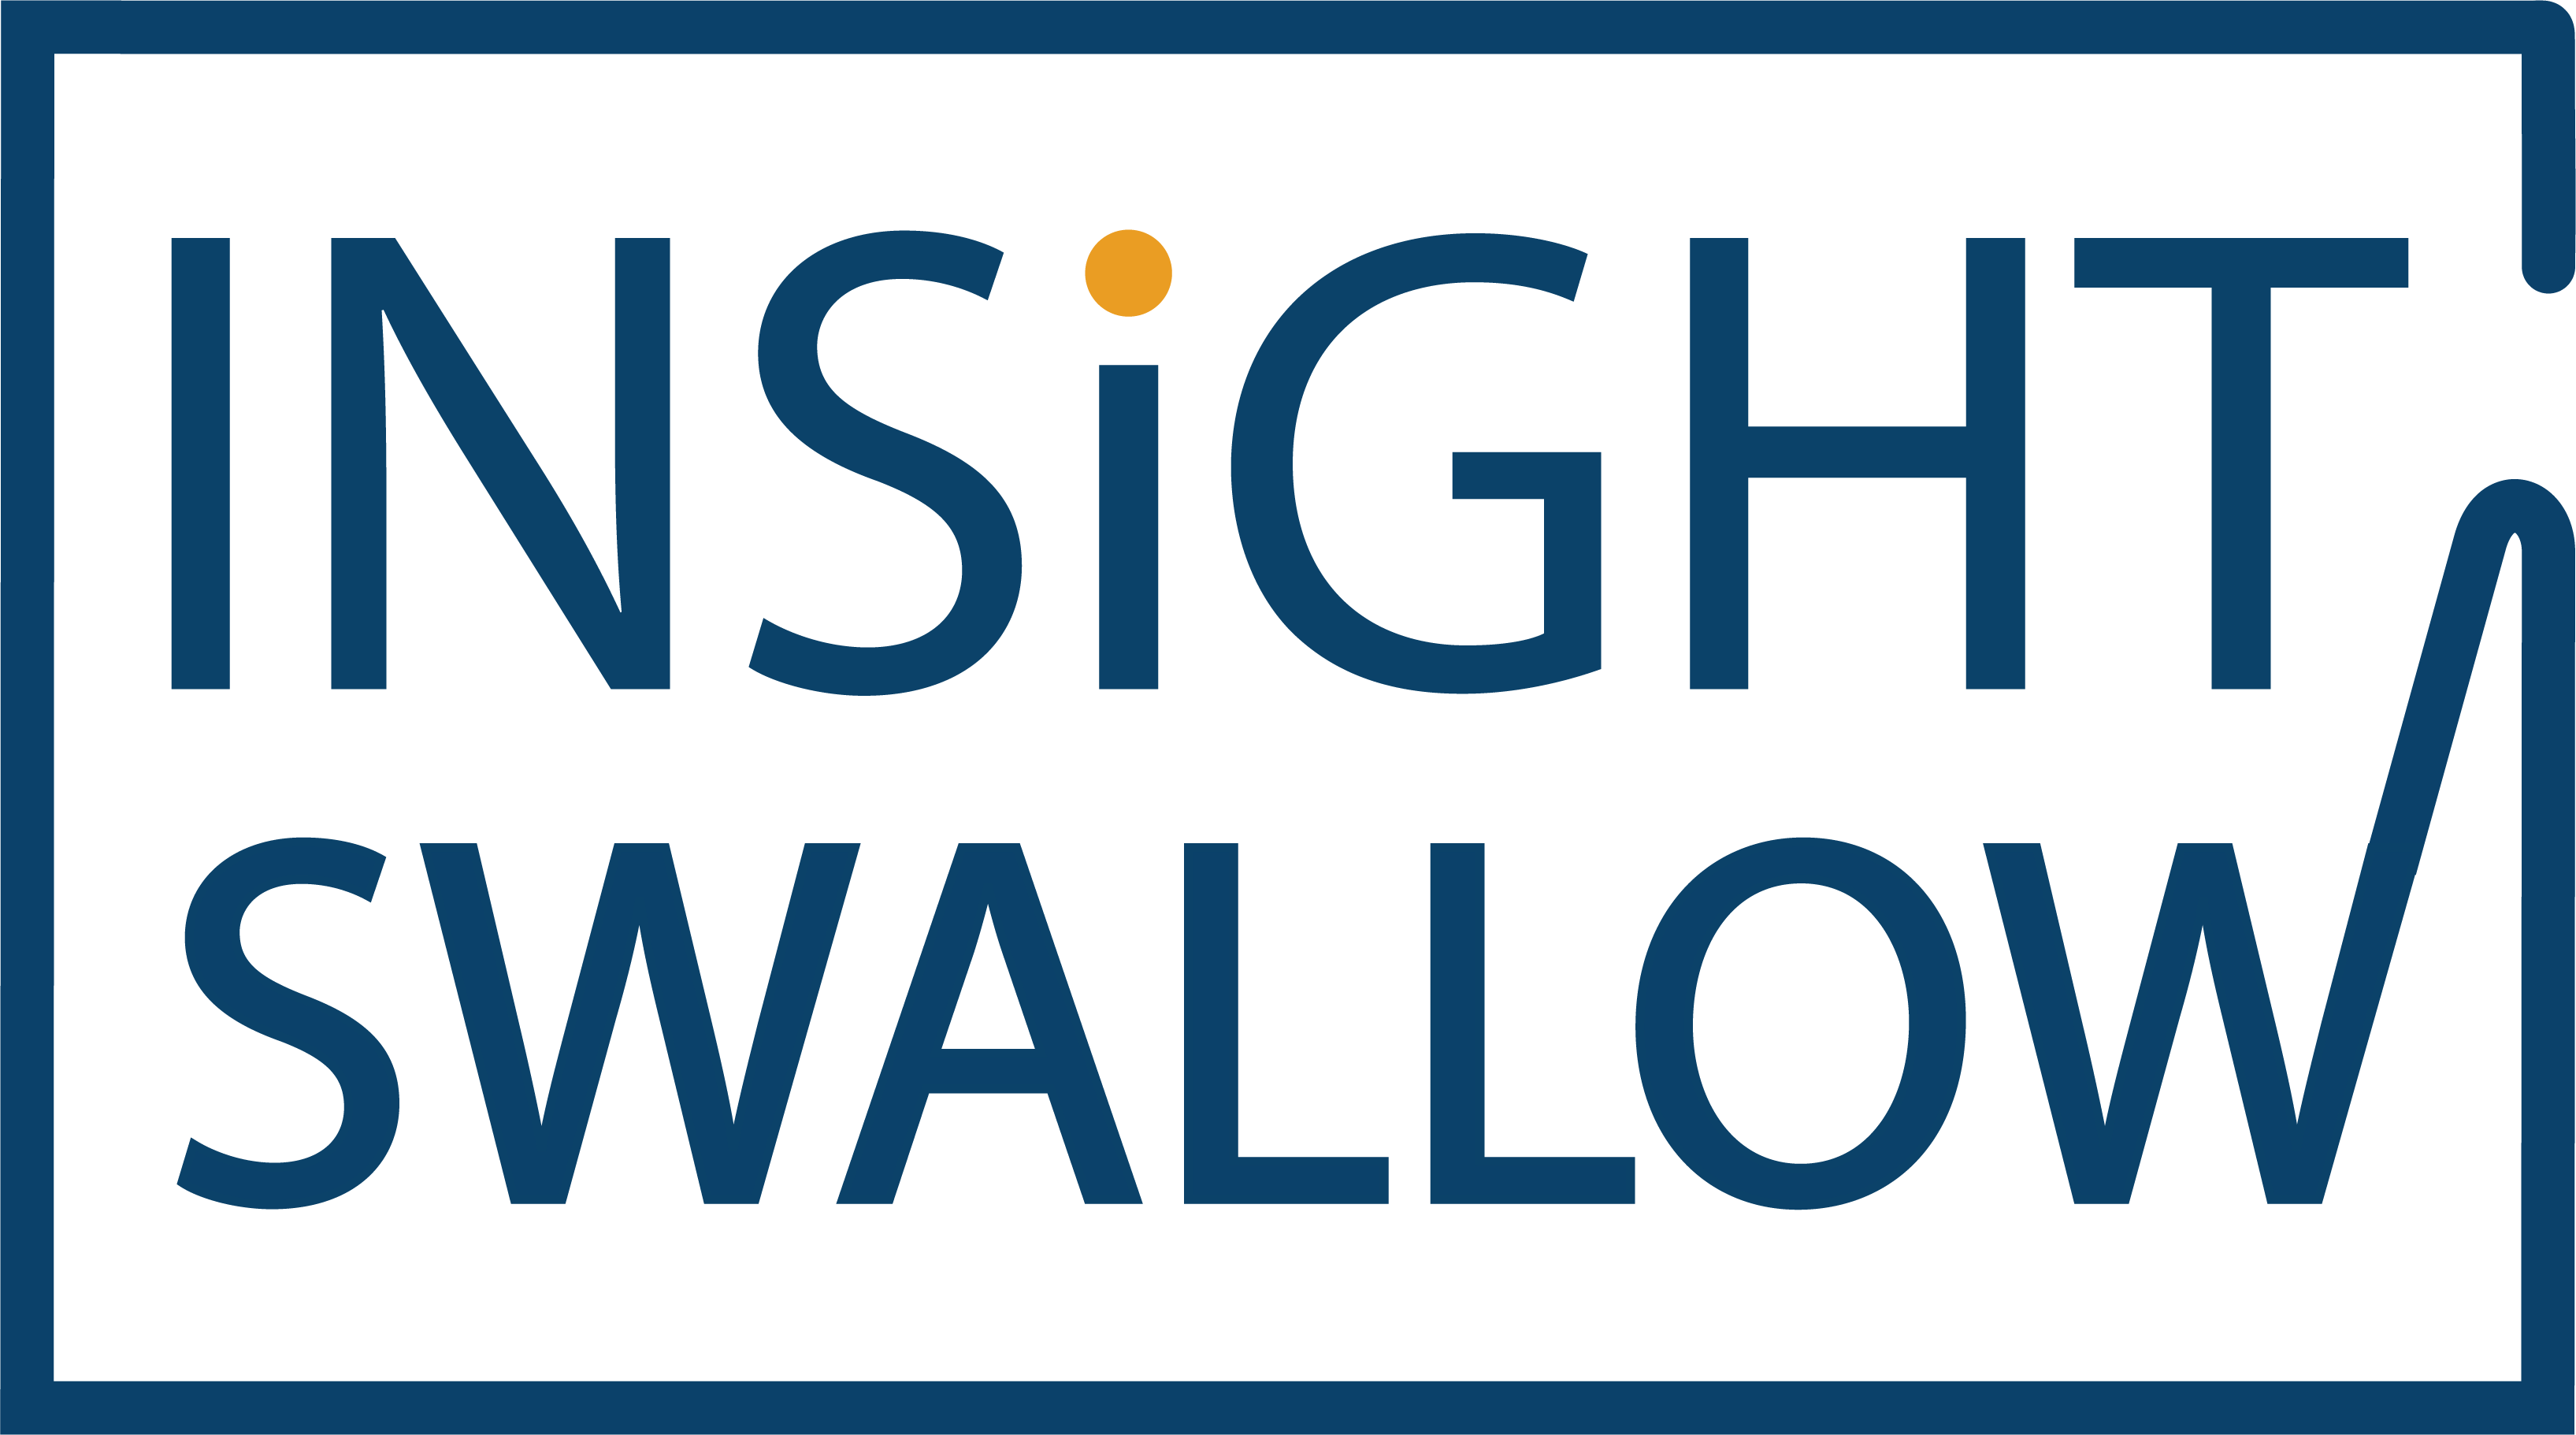 Insight Swallow